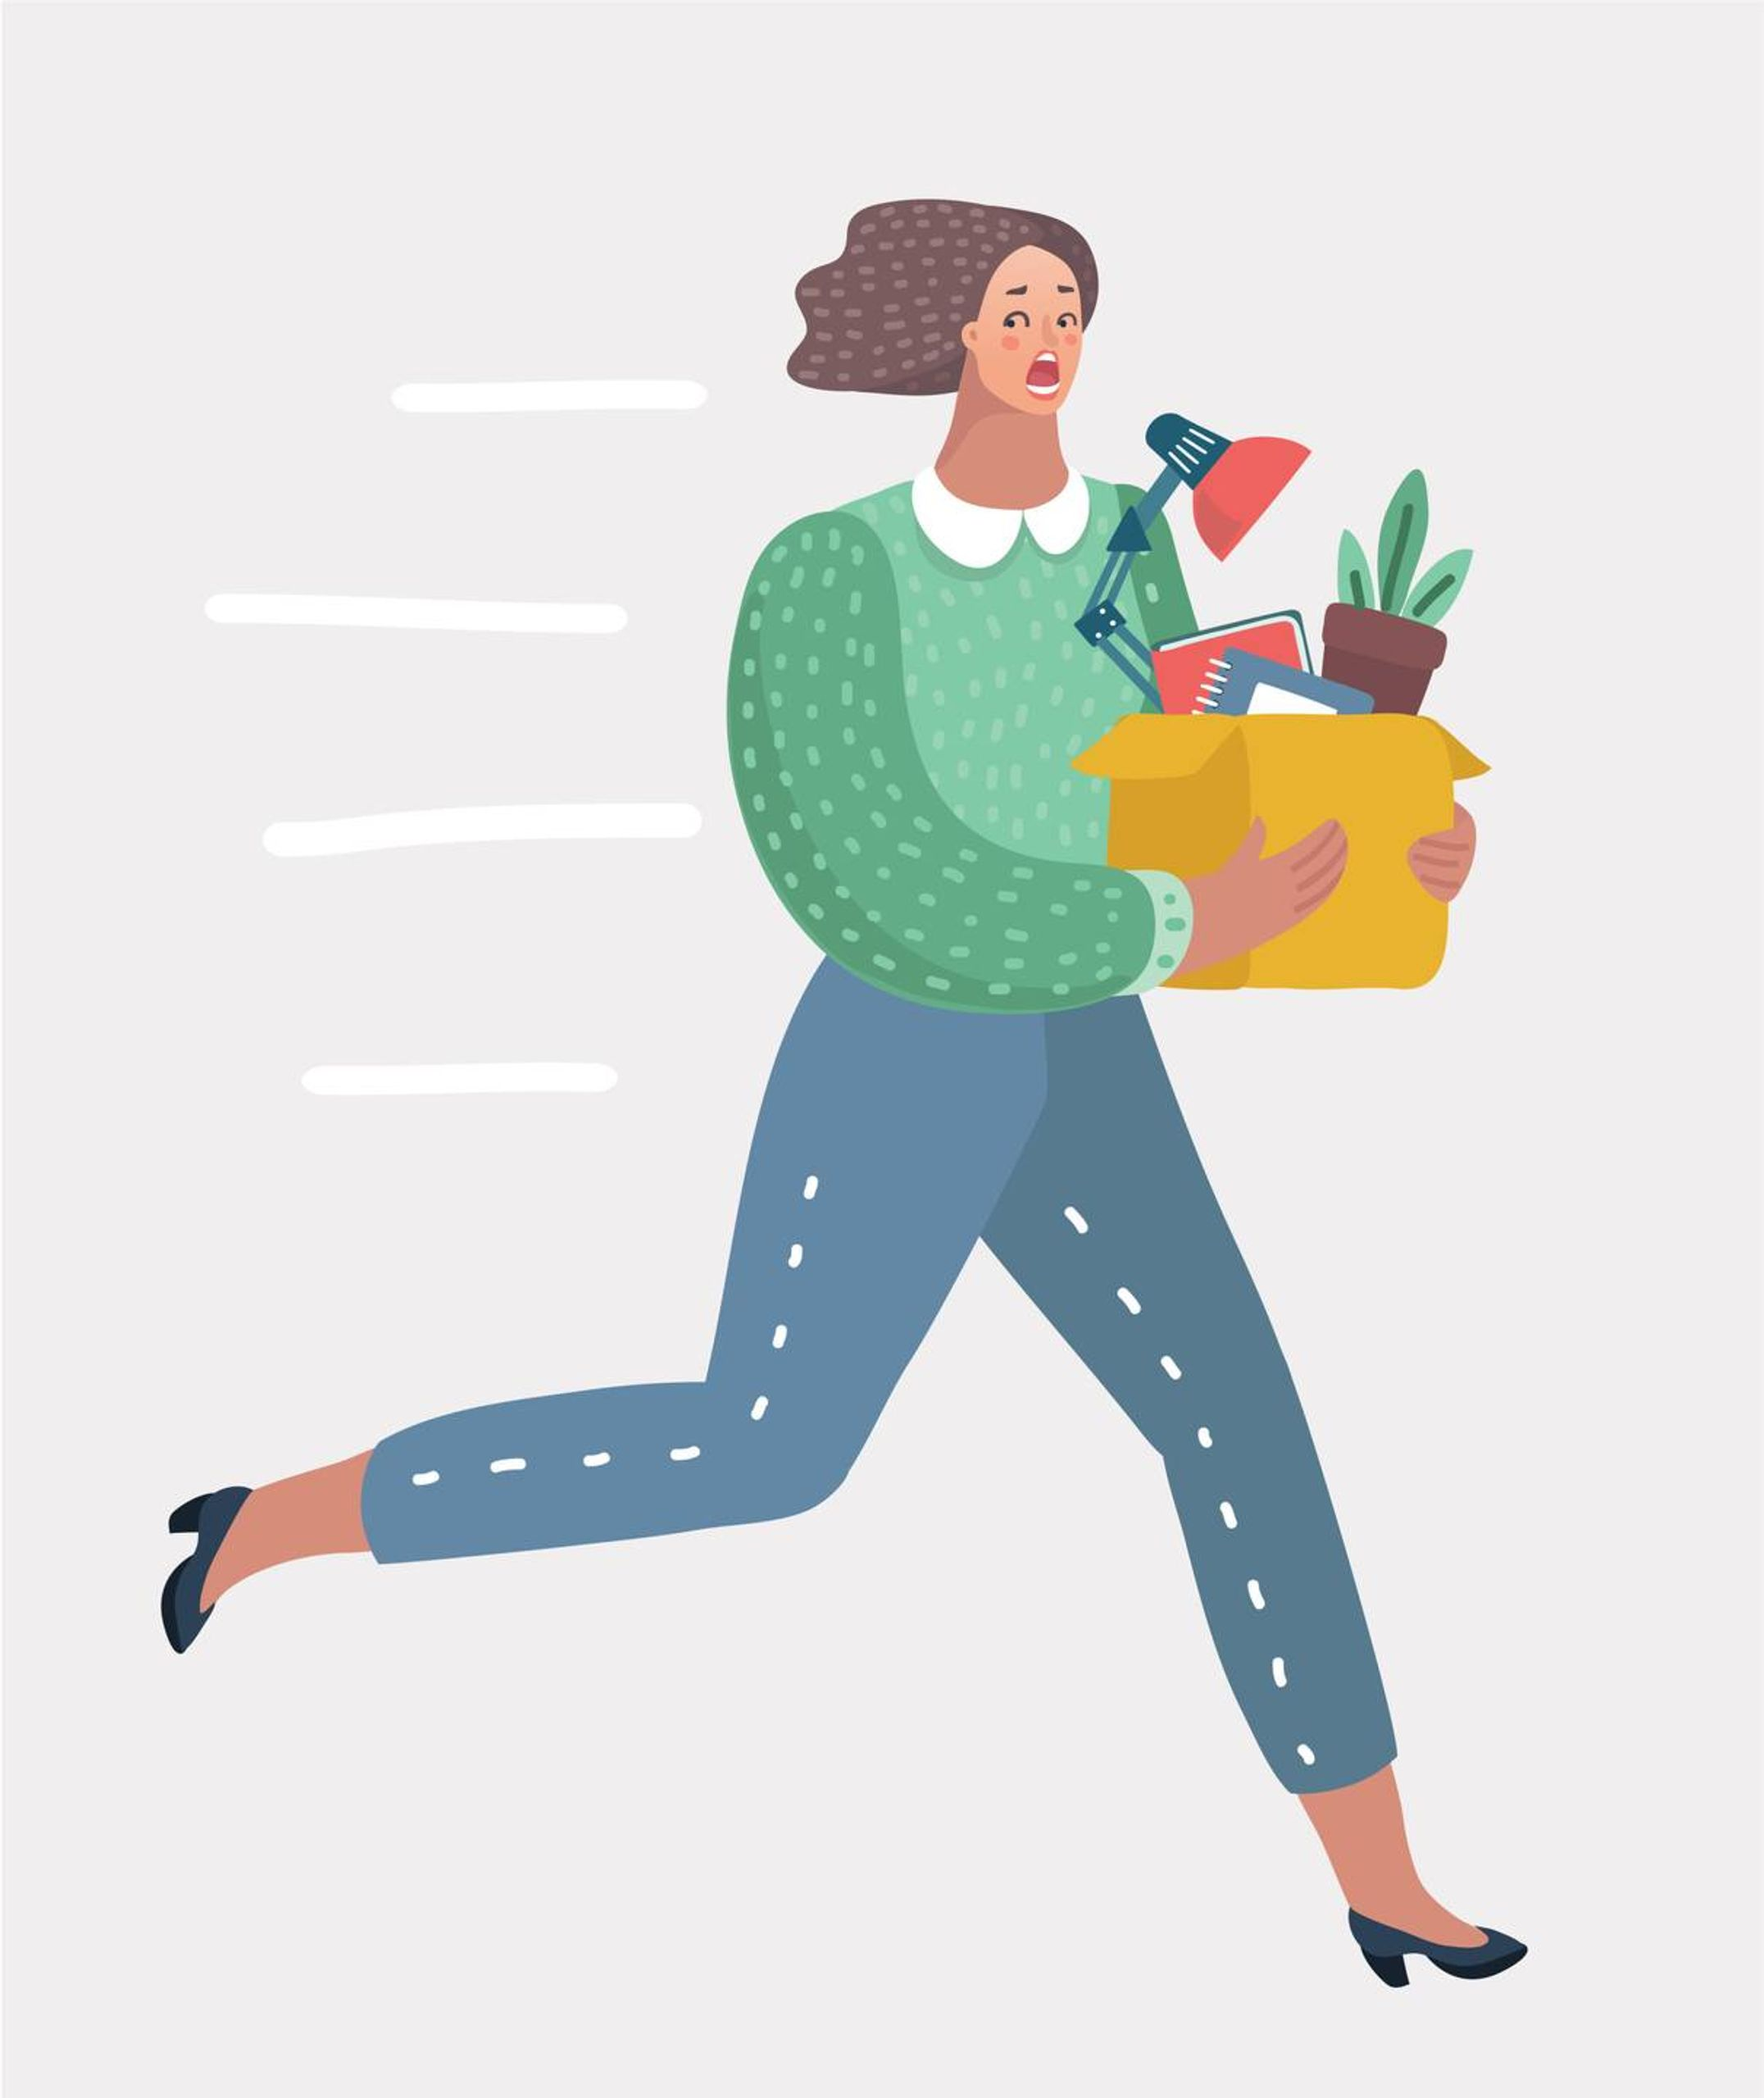 Illustration of a woman holding a box of work desk belongings while running, quitting, rewire, job